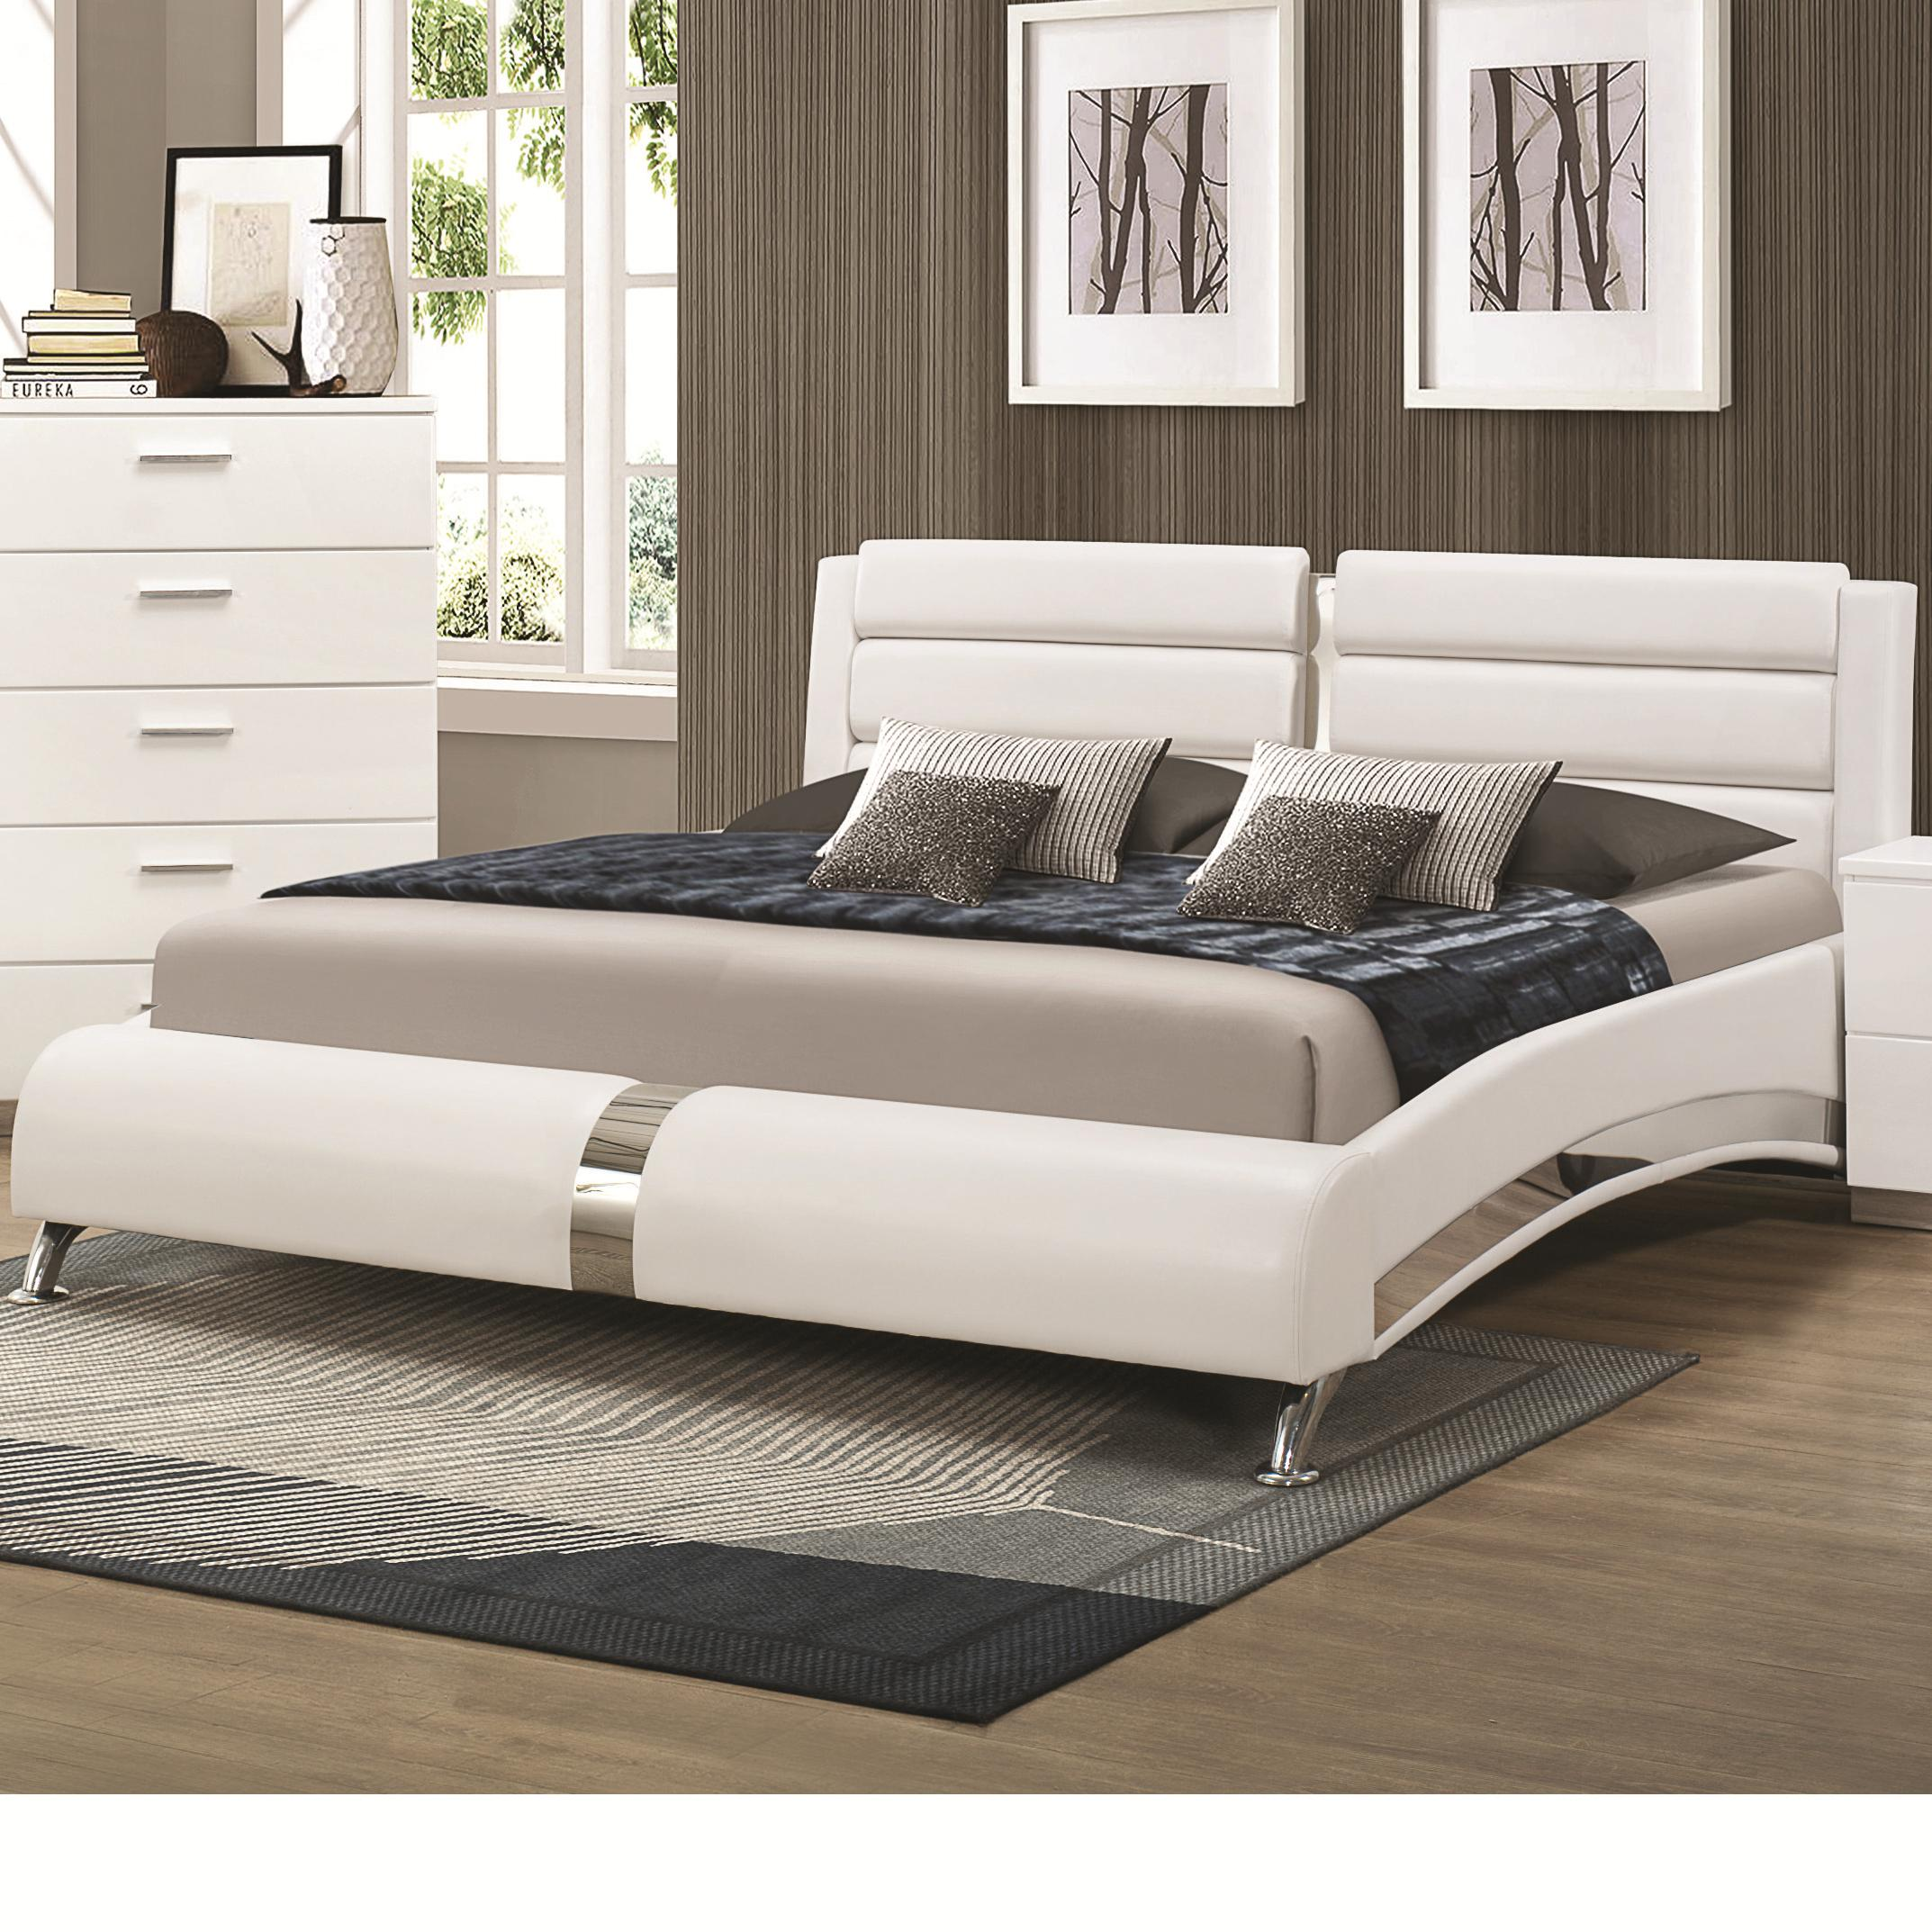 Coaster Felicity California King Bed With Metallic Accents Value City Furniture Headboard Footboard